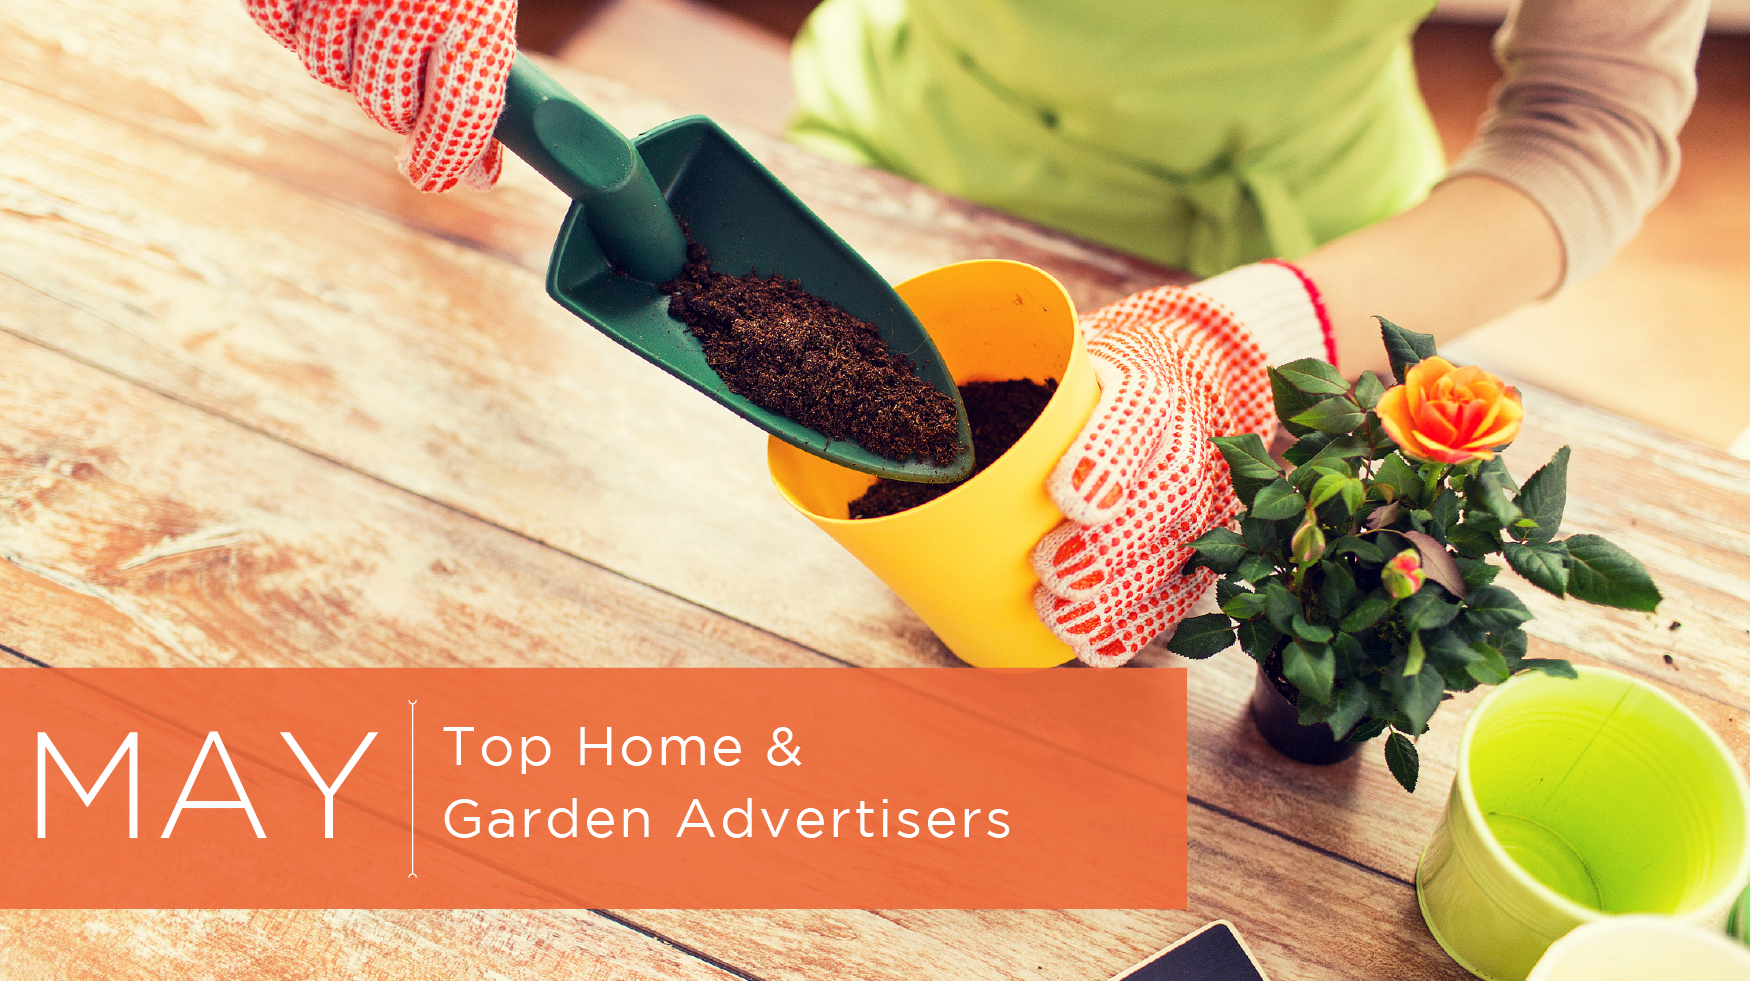 May_Top_Home__Garden_Advertisers_blog_header.png